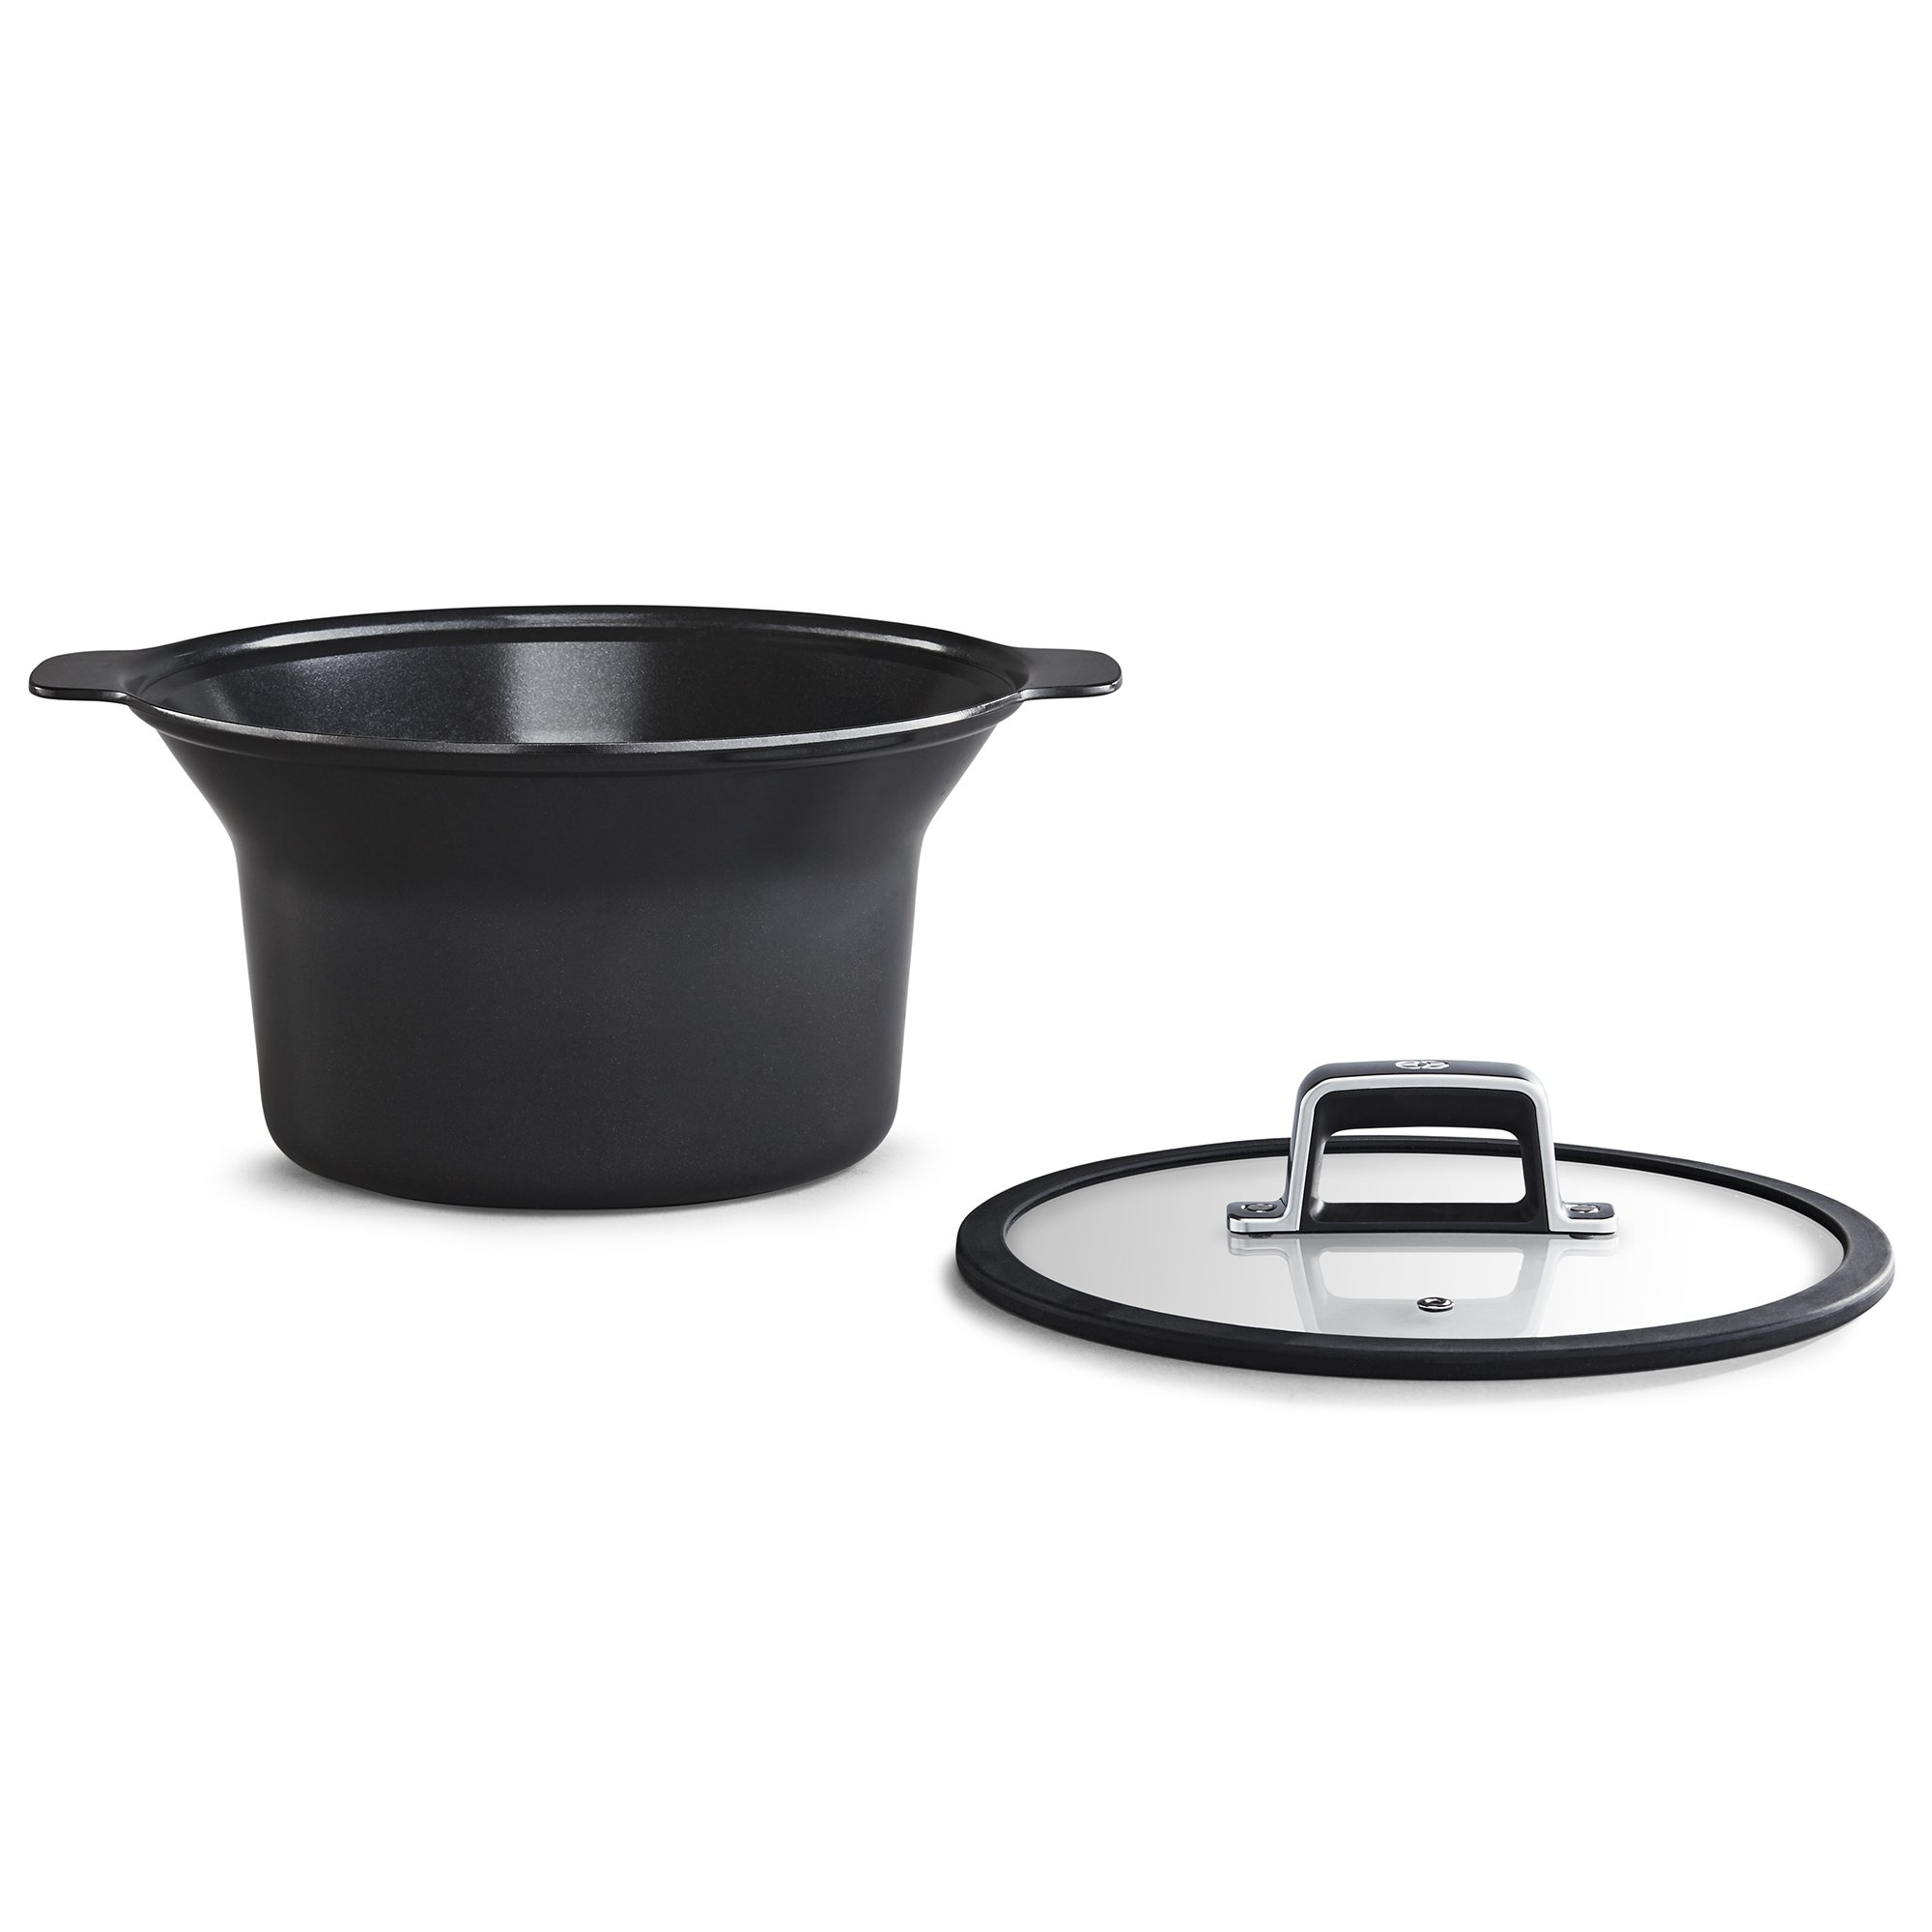 Calphalon Digital Sauté Slow Cooker Replacement Cooking Pot